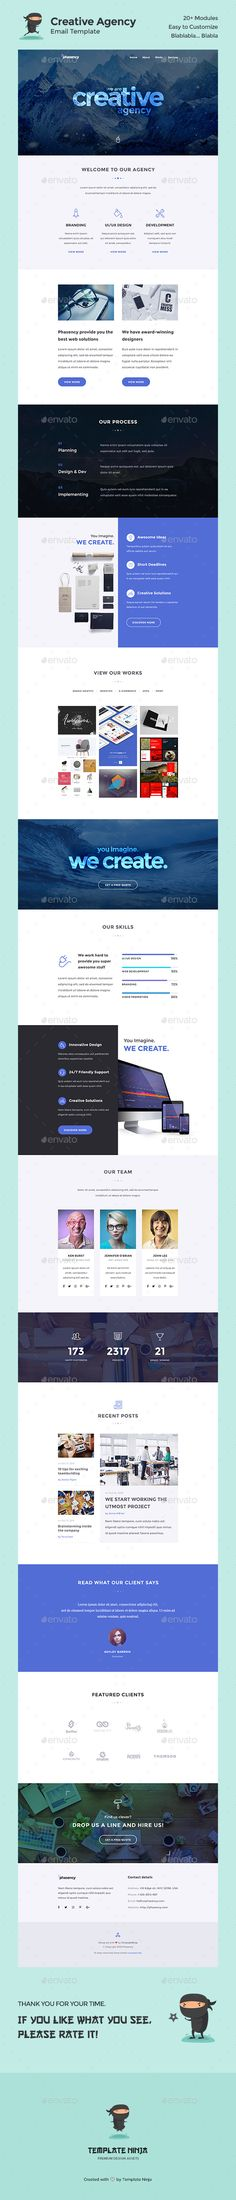 email newsletter psd templates